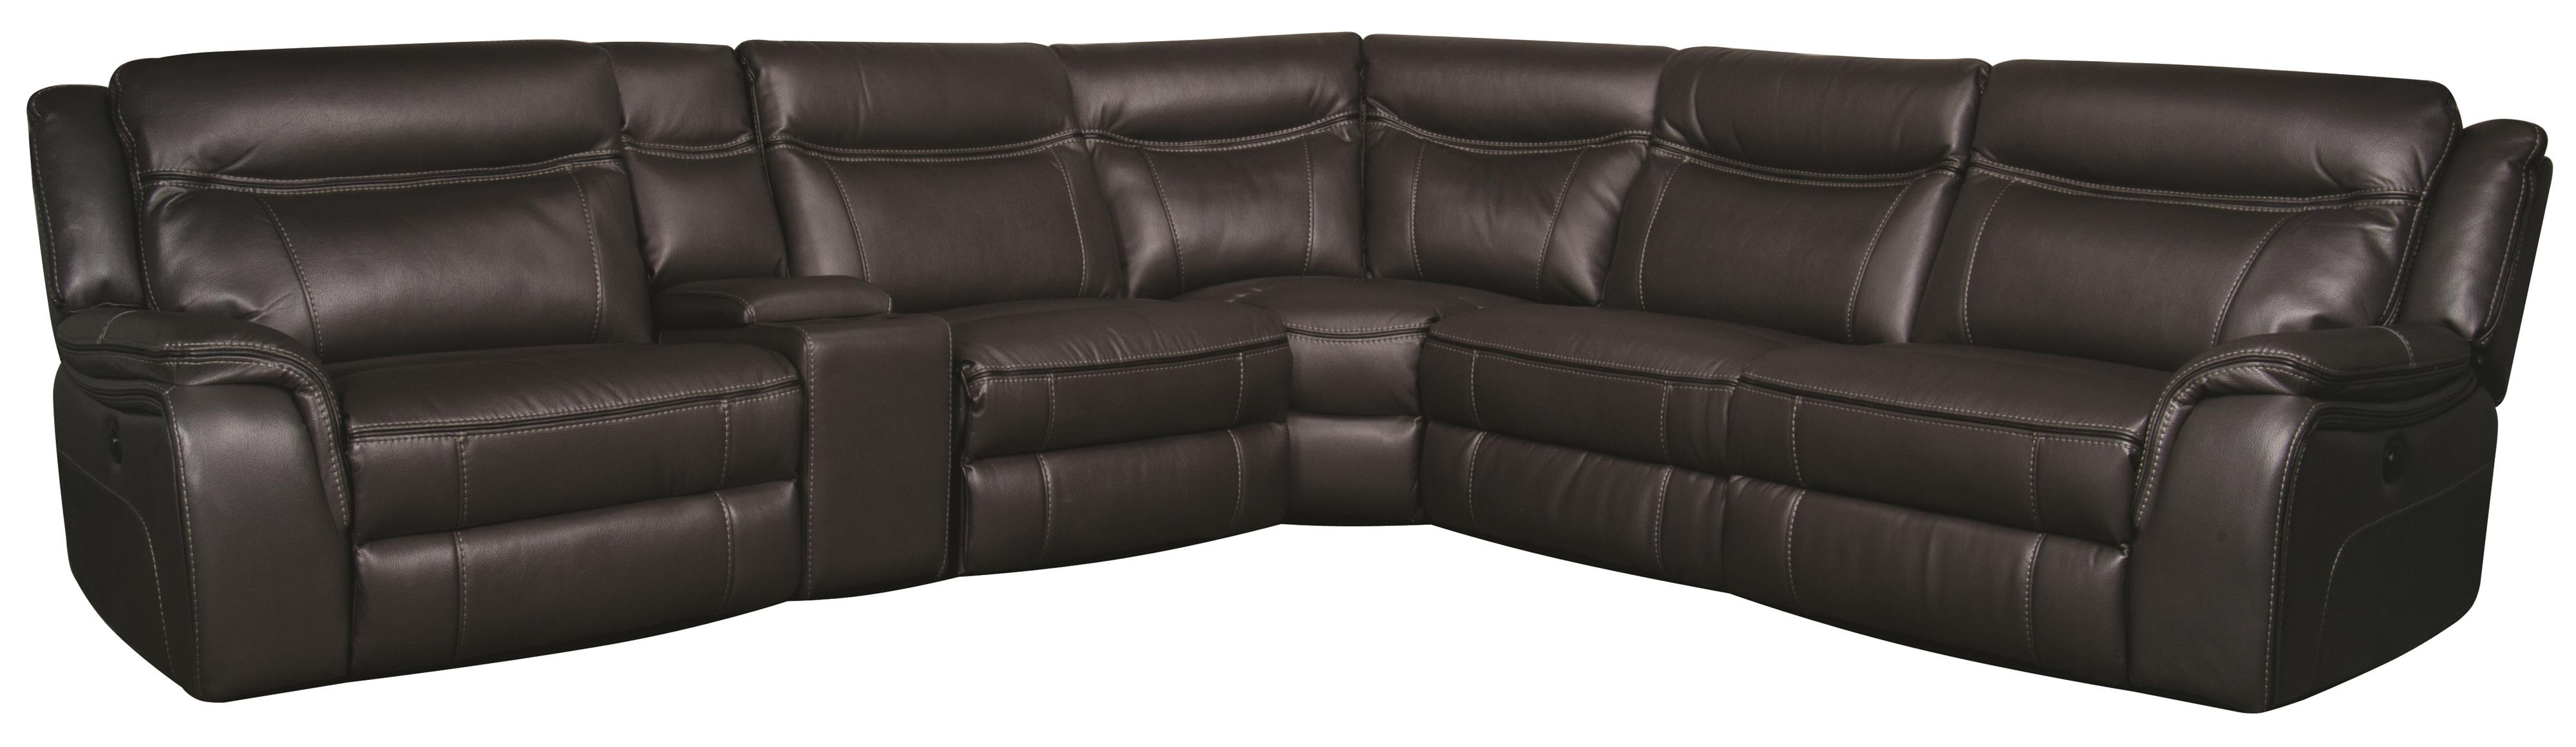 Morris Home Furnishings Curtis Curtis 6-Piece Power Sectional - Item Number: 134829401